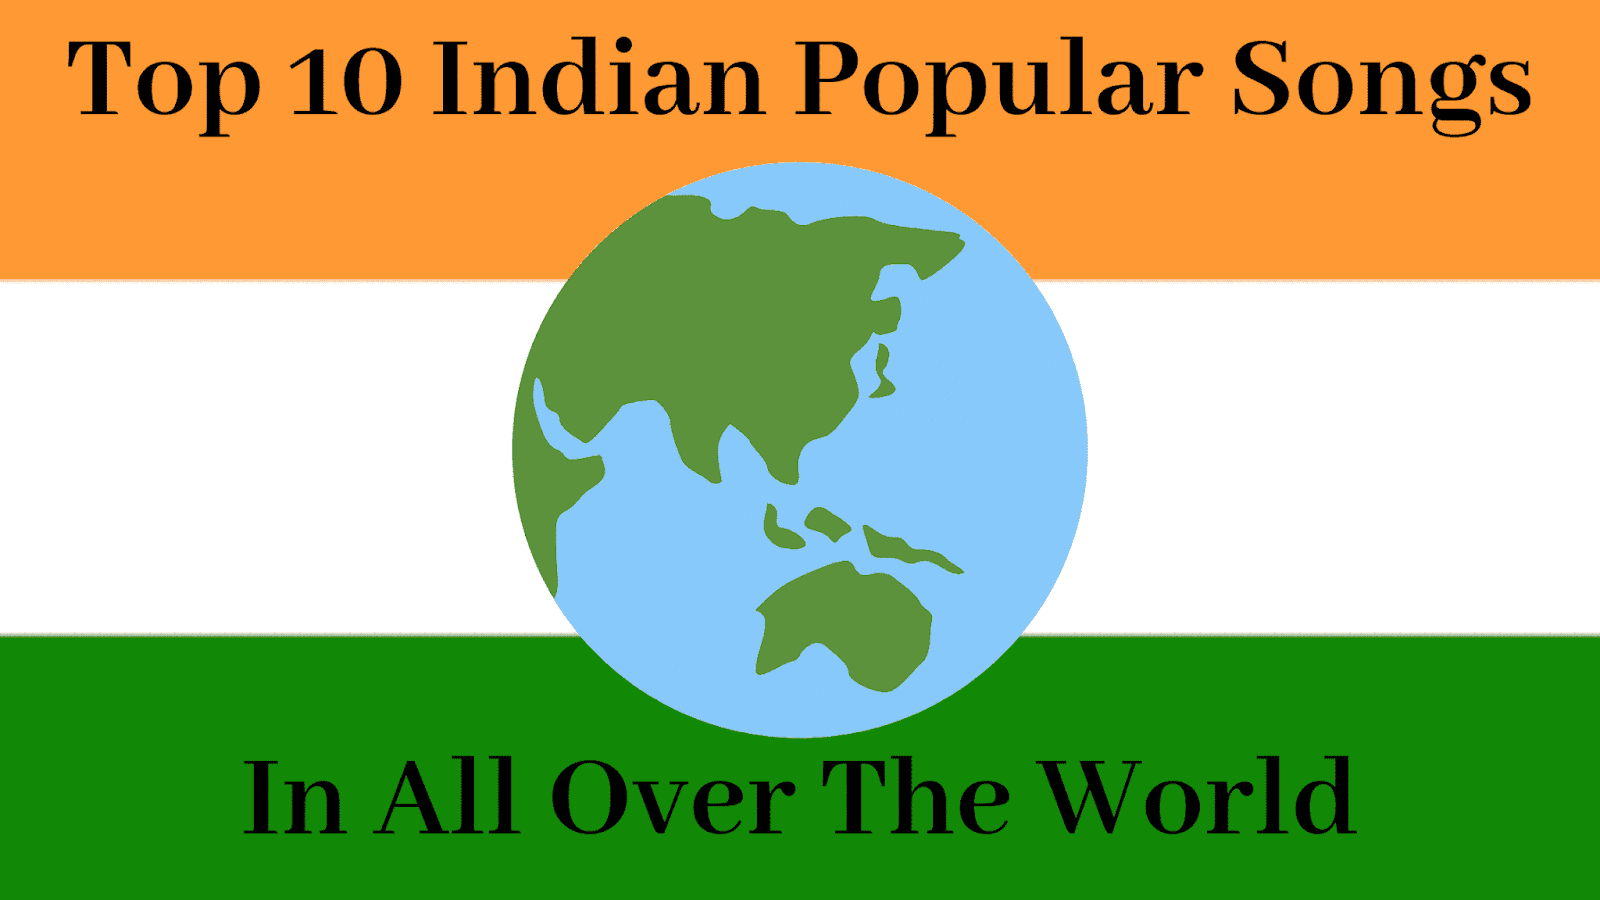 Top 10 Indian Popular Songs In All Over The World, Top 10 Indian Songs, Popular Indian Songs